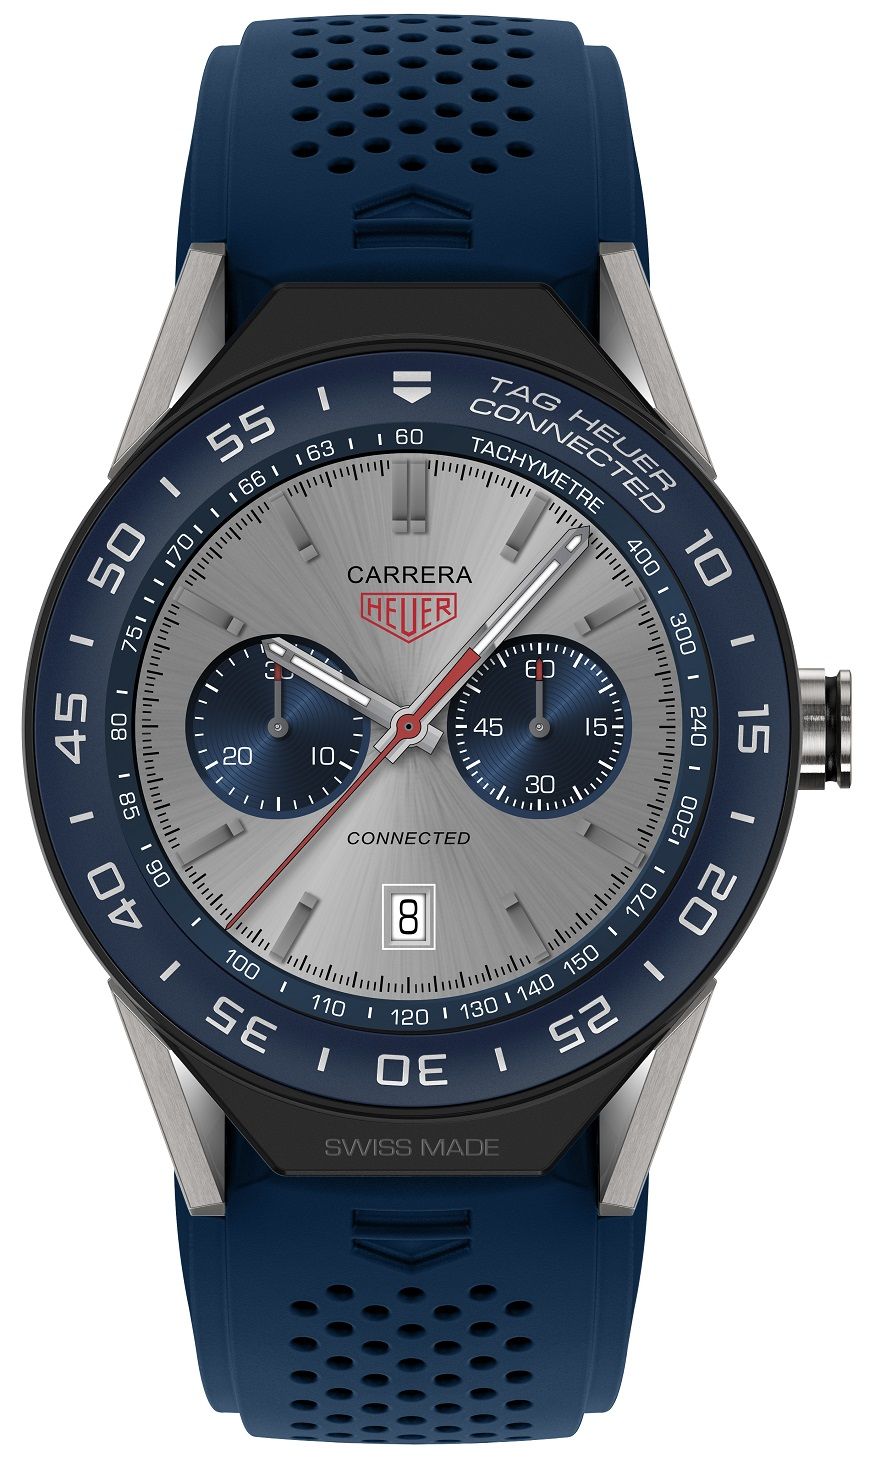 B. TAG HEUER CONNECTED MODULAR 45 (20)